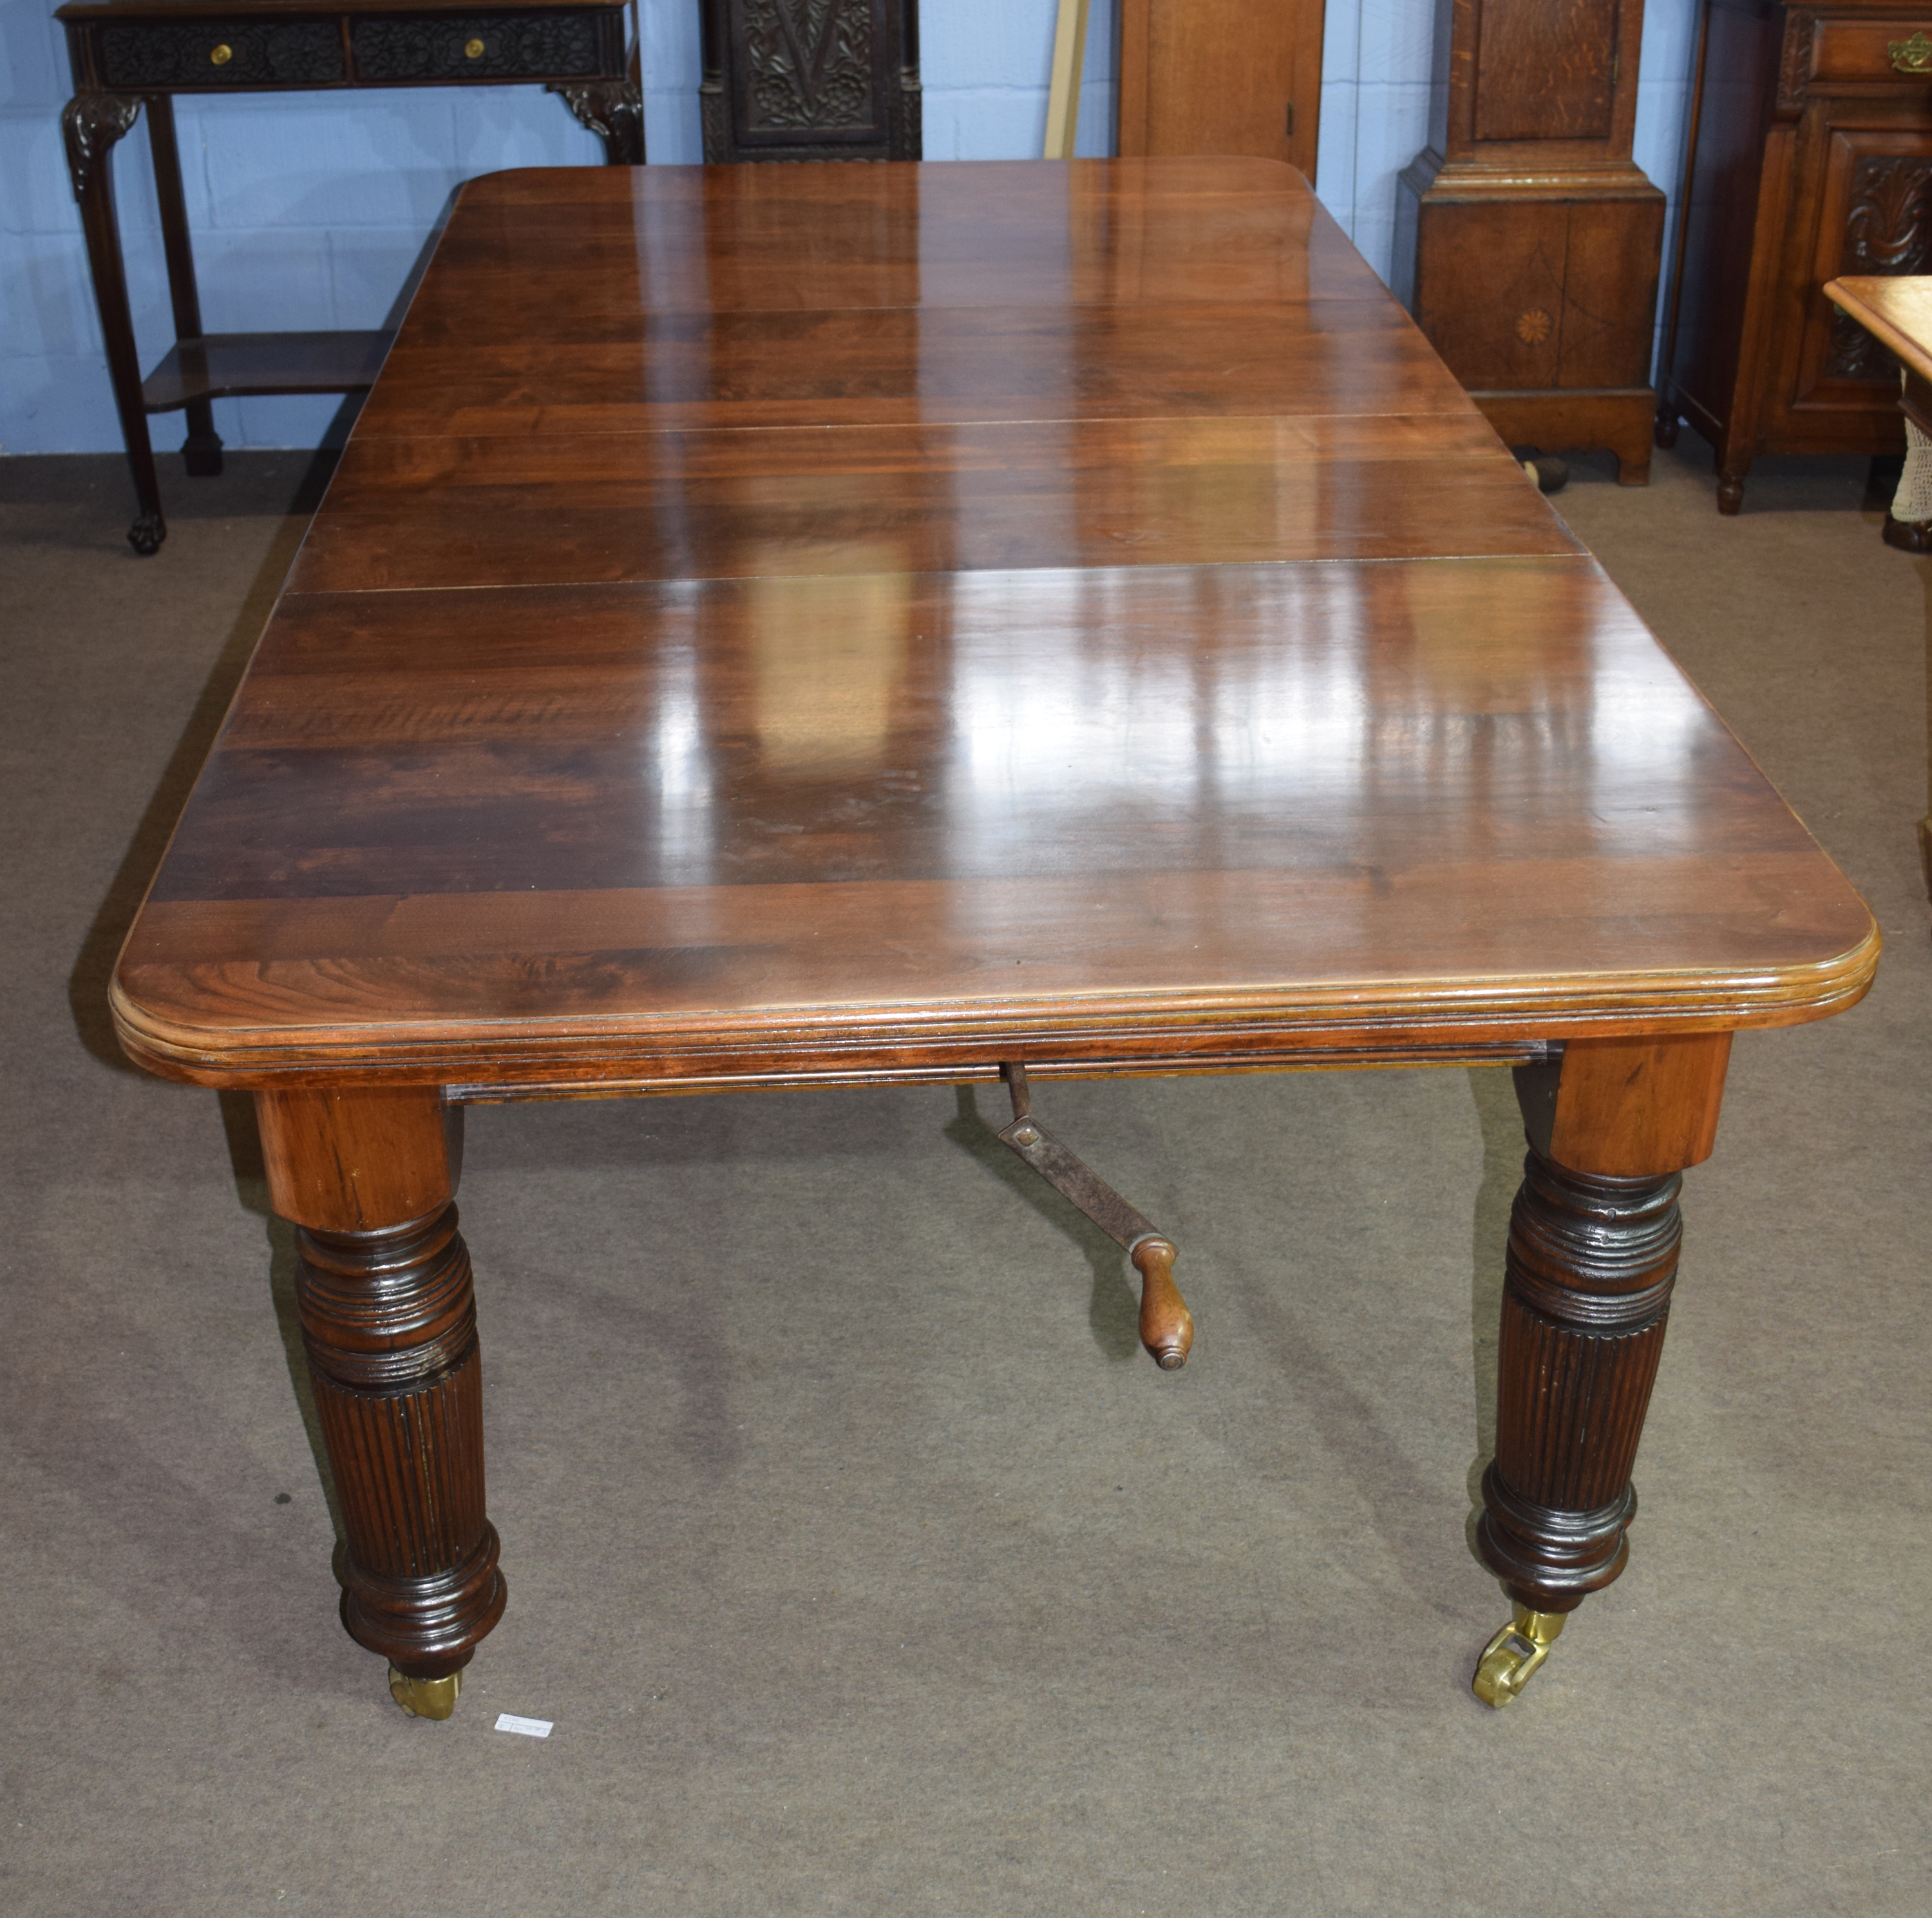 Late Victorian mahogany extending dining table raised on fluted legs and brass casters, 237cm wide - Image 5 of 6